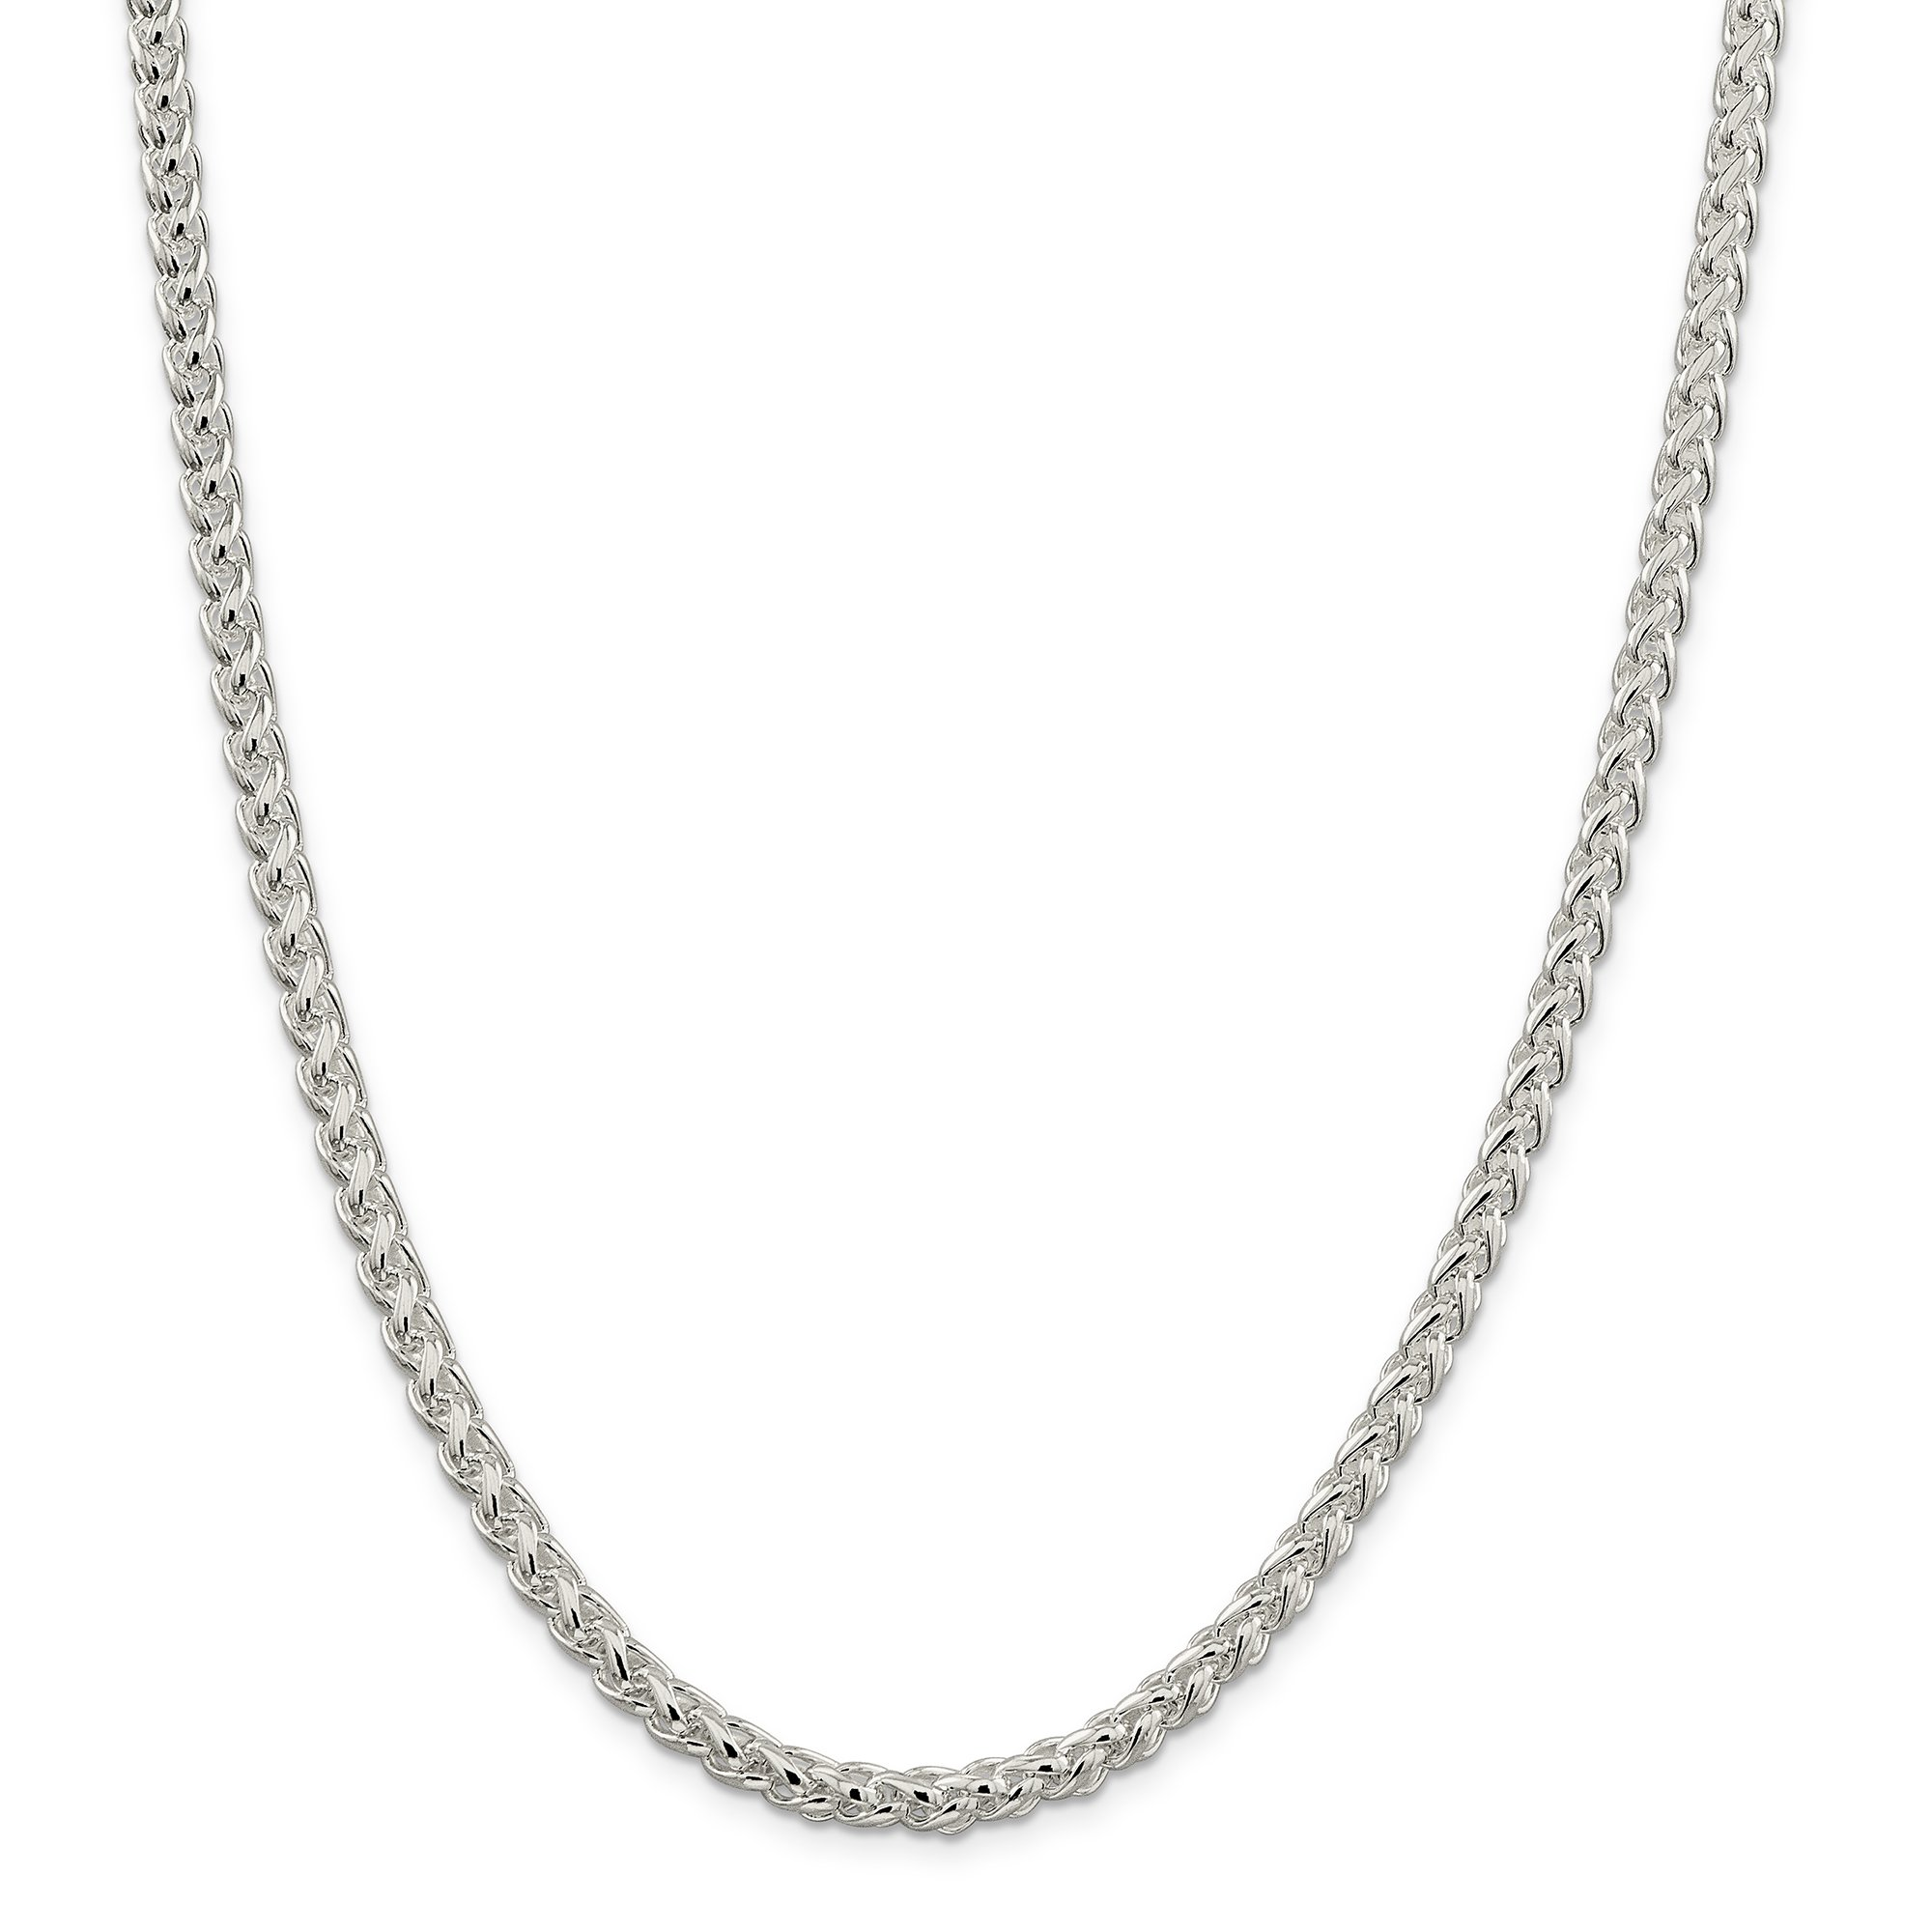 ICE CARATS 925 Sterling Silver 5mm Round Spiga Chain Necklace 24 Inch Wheat Fine Jewelry Gift For Women Heart